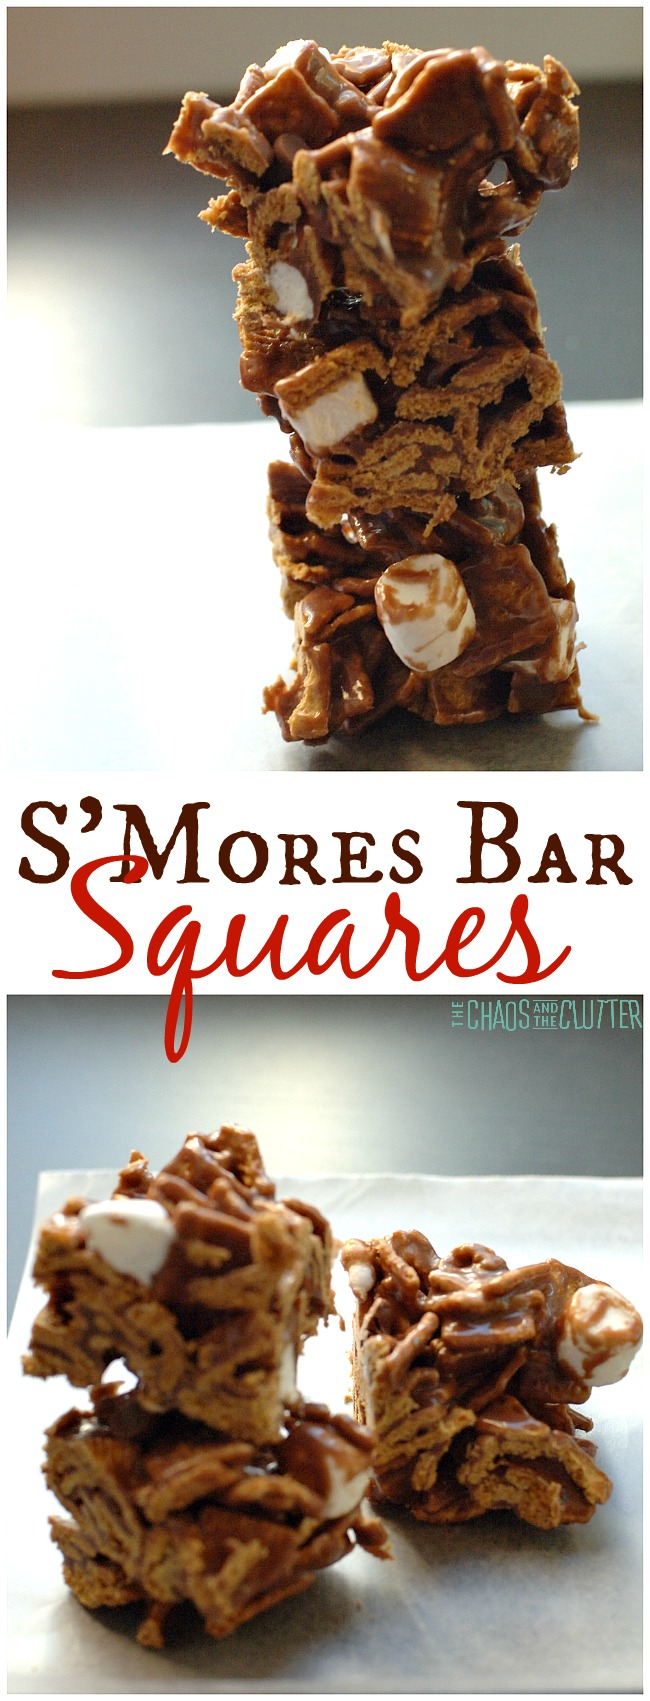 With these S'mores bar squares, you can bring the taste of camping to any day.